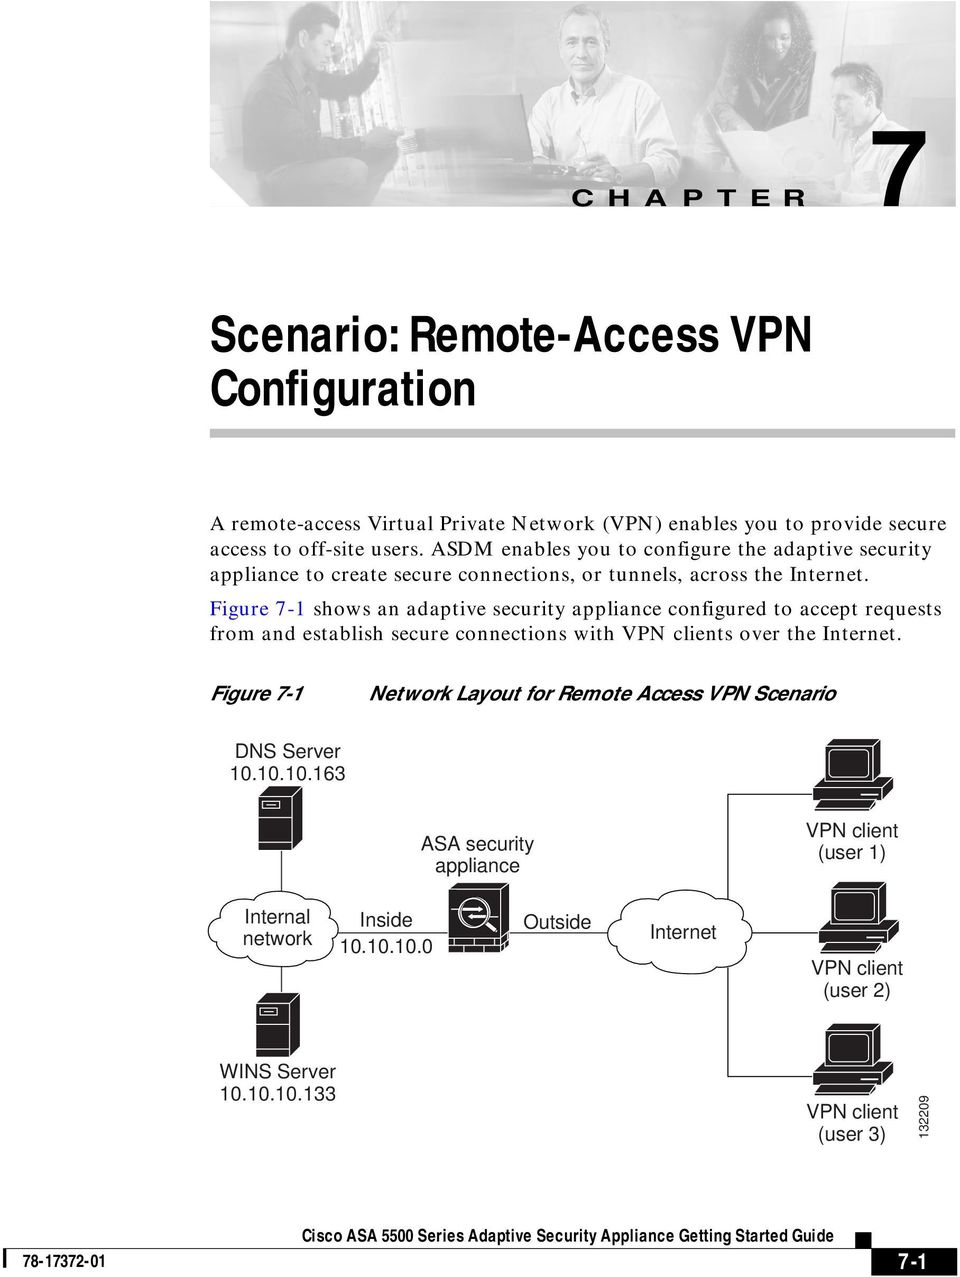 Figure 7-1 shows an adaptive security appliance configured to accept requests from and establish secure connections with VPN clients over the Internet.